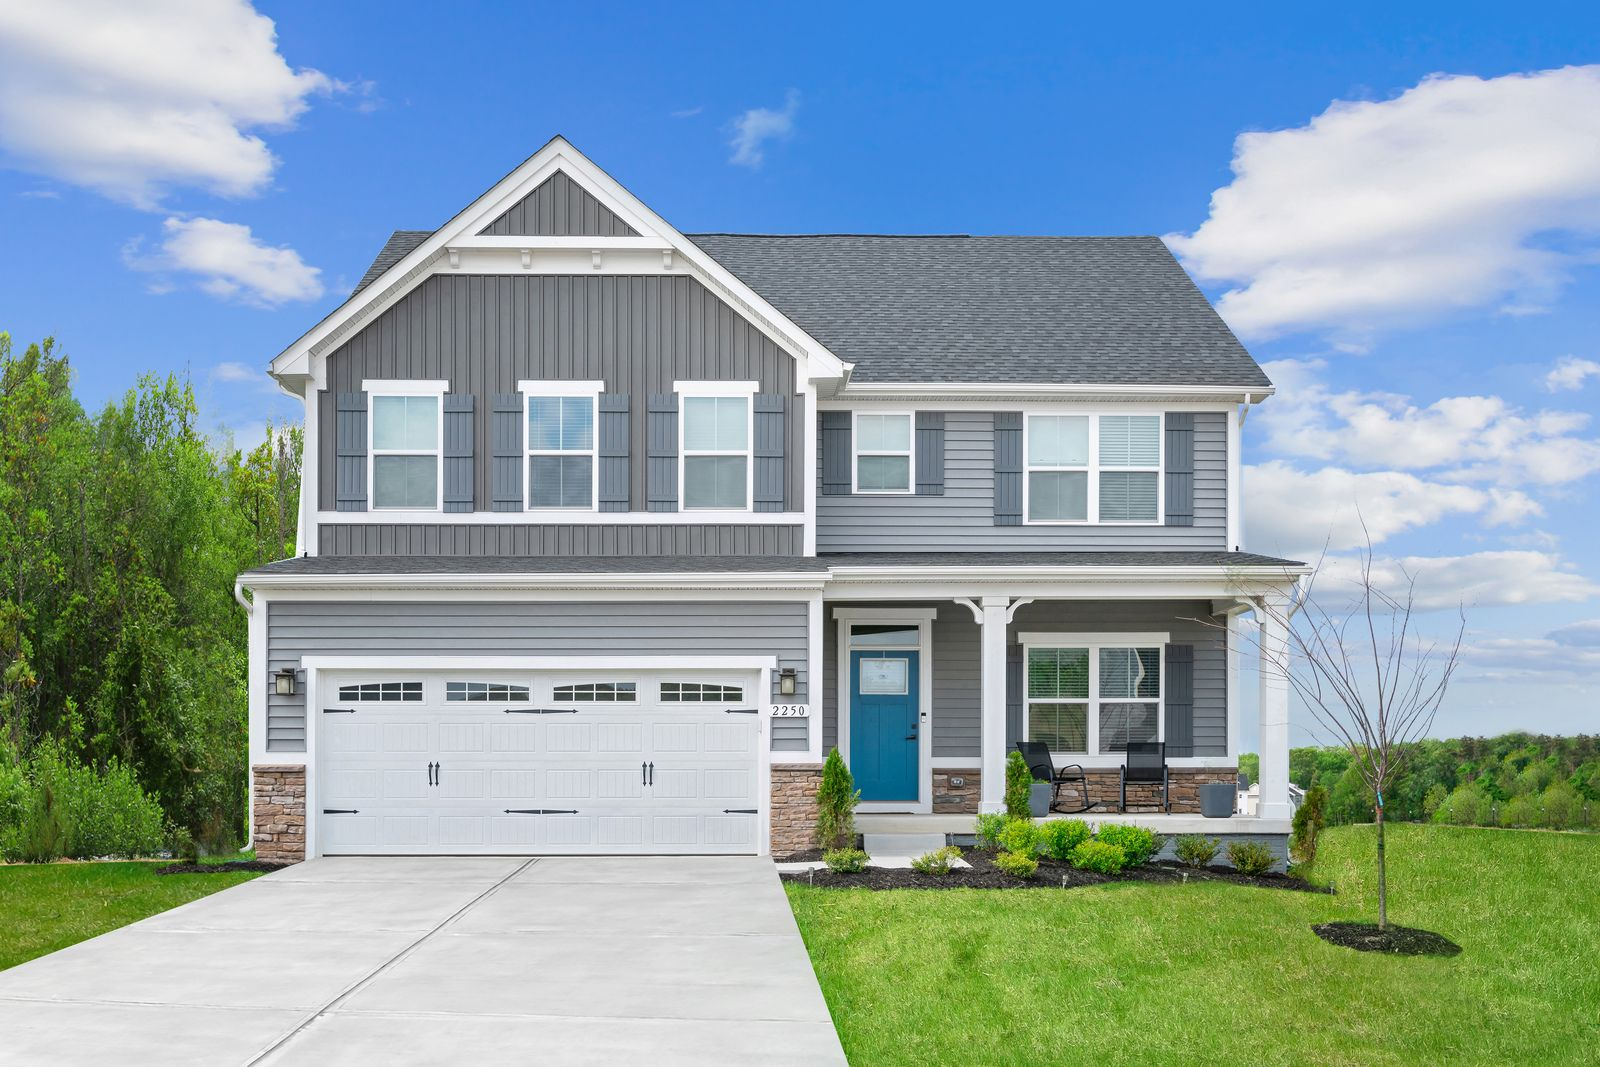 NEW 2-STORY AND RANCH HOMES IN BEAVERCREEK SCHOOLS AT RIVER RESERVE:Luxury features & finished basement included! Located on Indian Ripple, minutes to The Greene & WPAFB. From the low $300s.Click here to schedule your visit to River Reserve today!